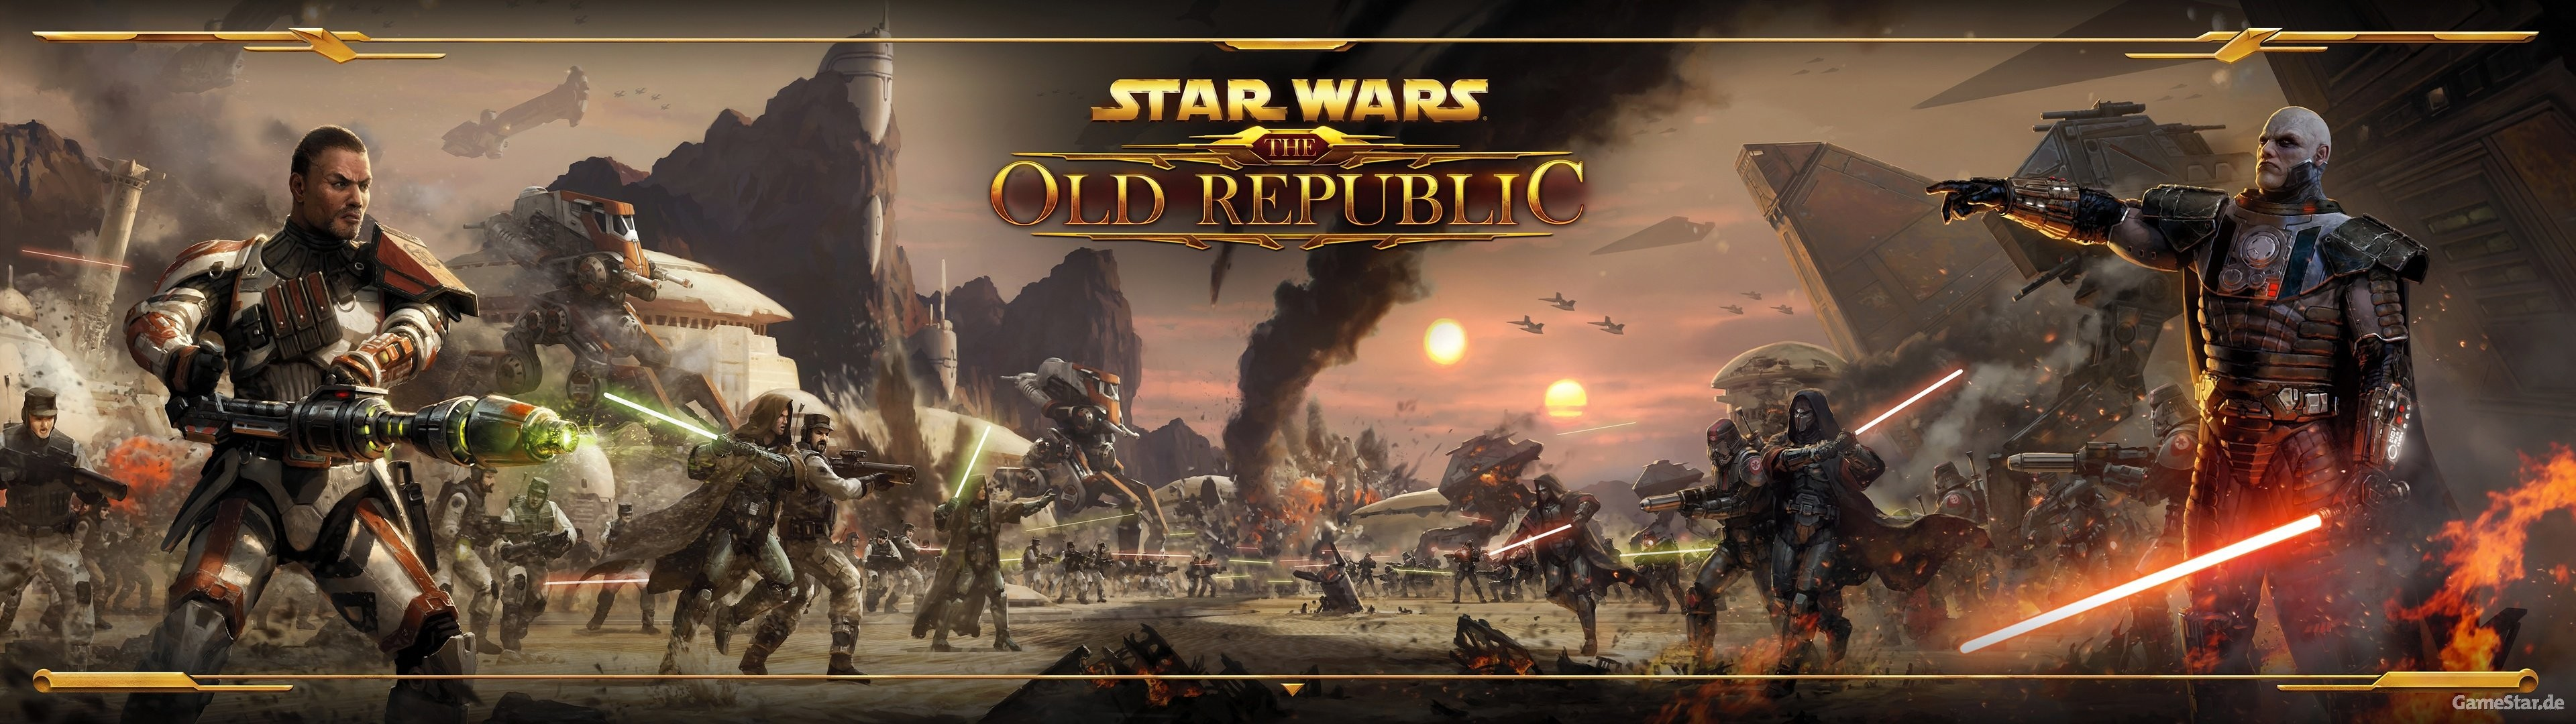 STAR WARS OLD REPUBLIC mmo rpg swtor fighting sci-fi wallpaper      518892   WallpaperUP